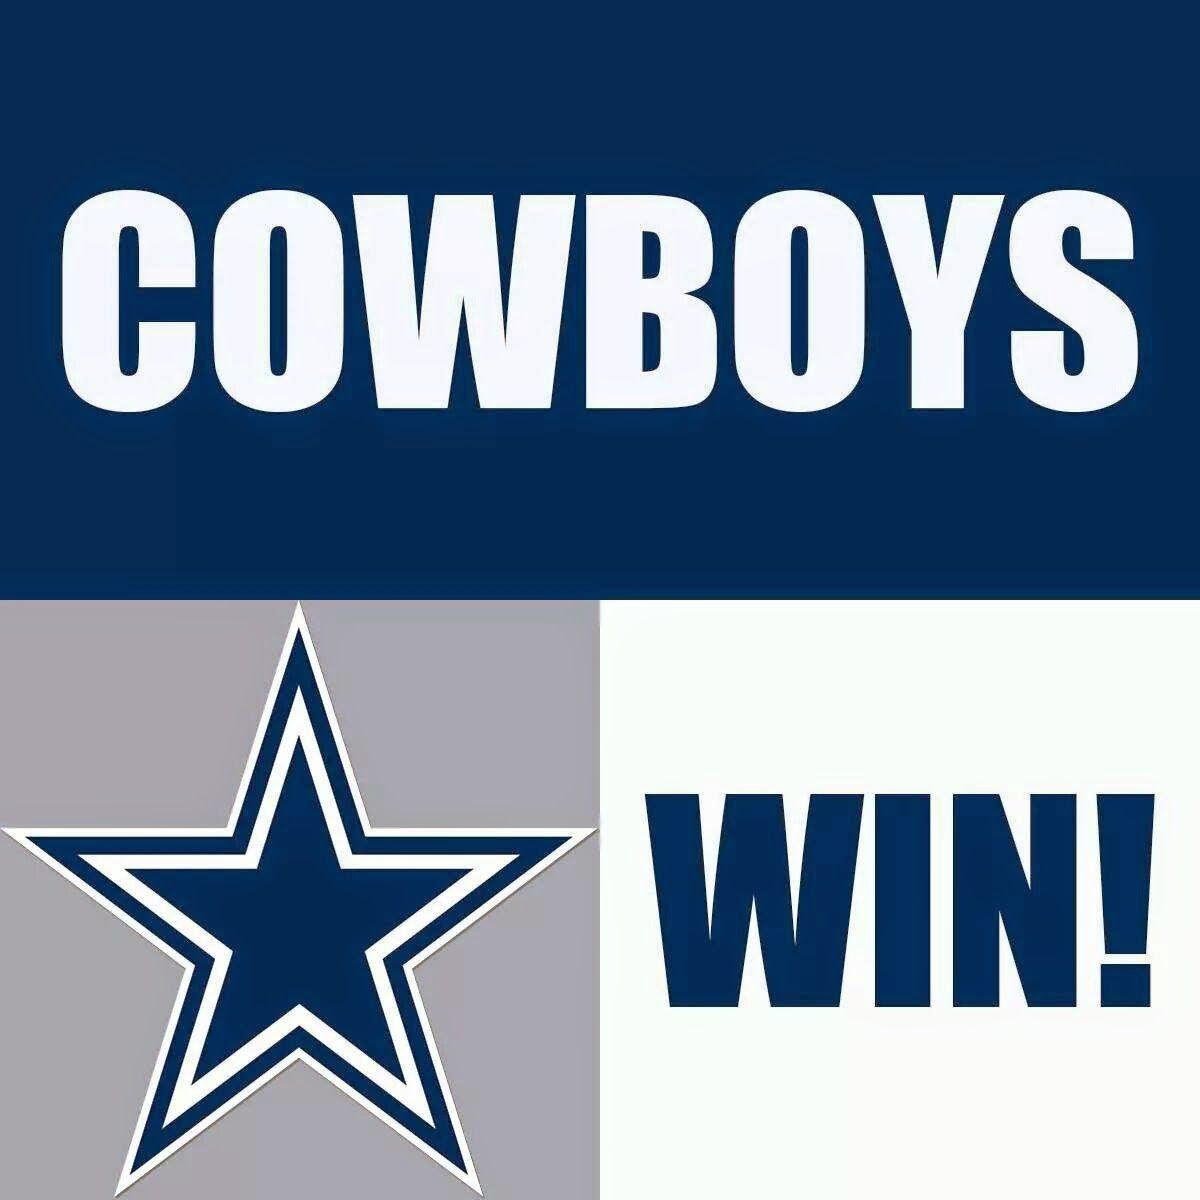 cowboys win today